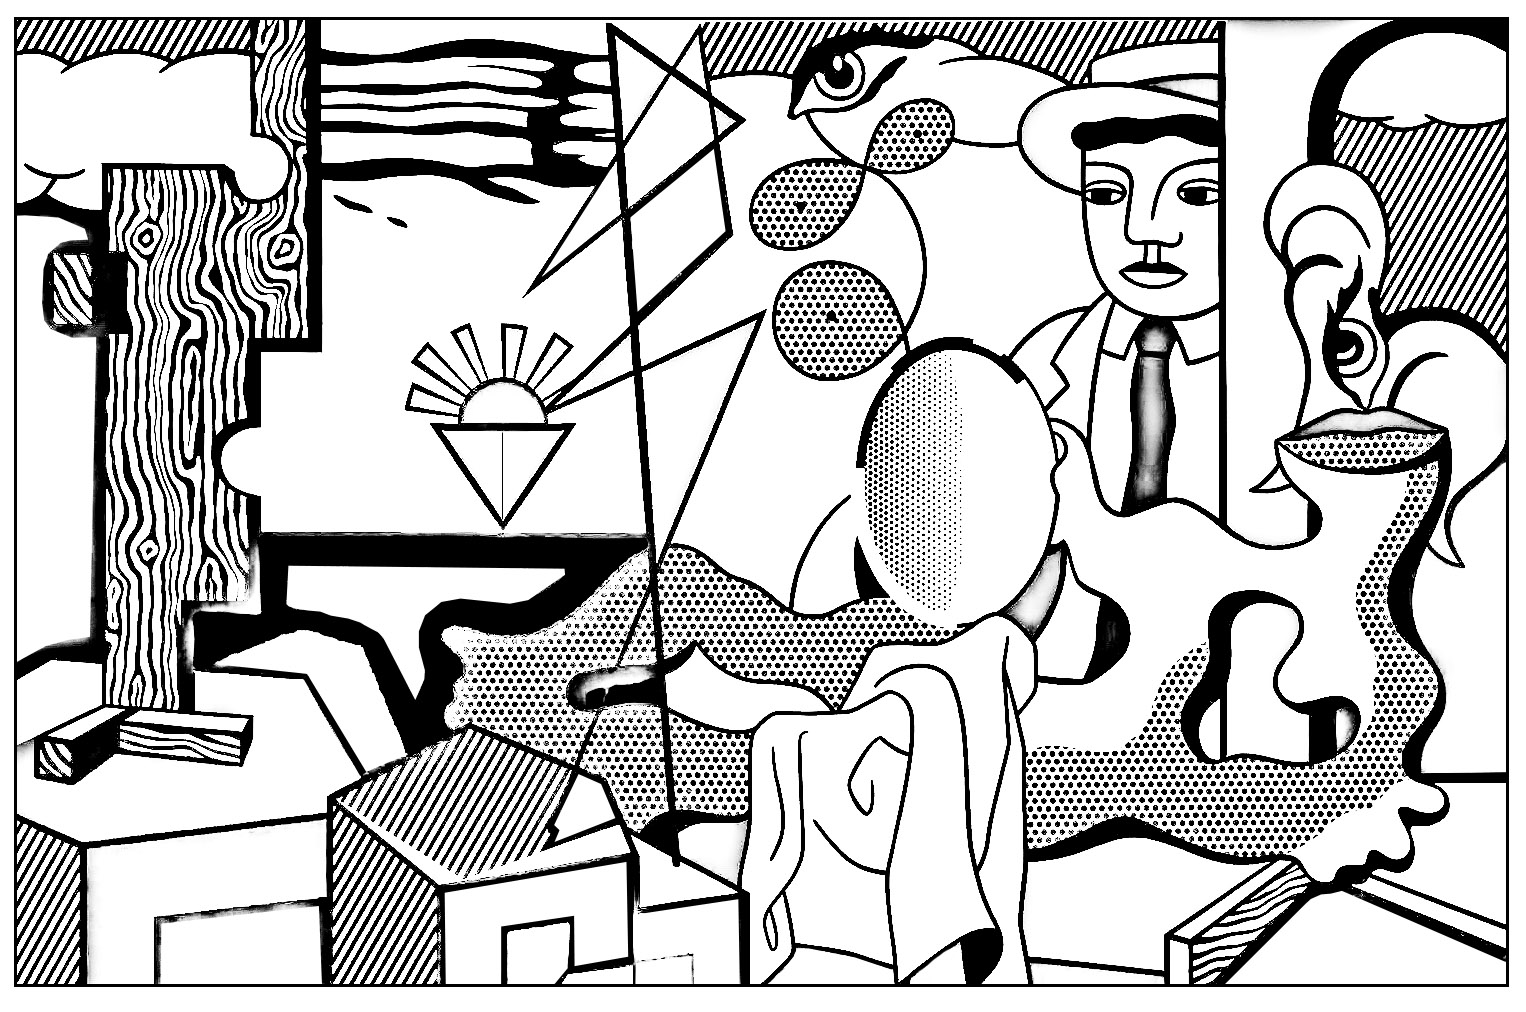 roy lichtenstein coloring pages roy lichtenstein pop art coloring pages sketch coloring page roy pages coloring lichtenstein